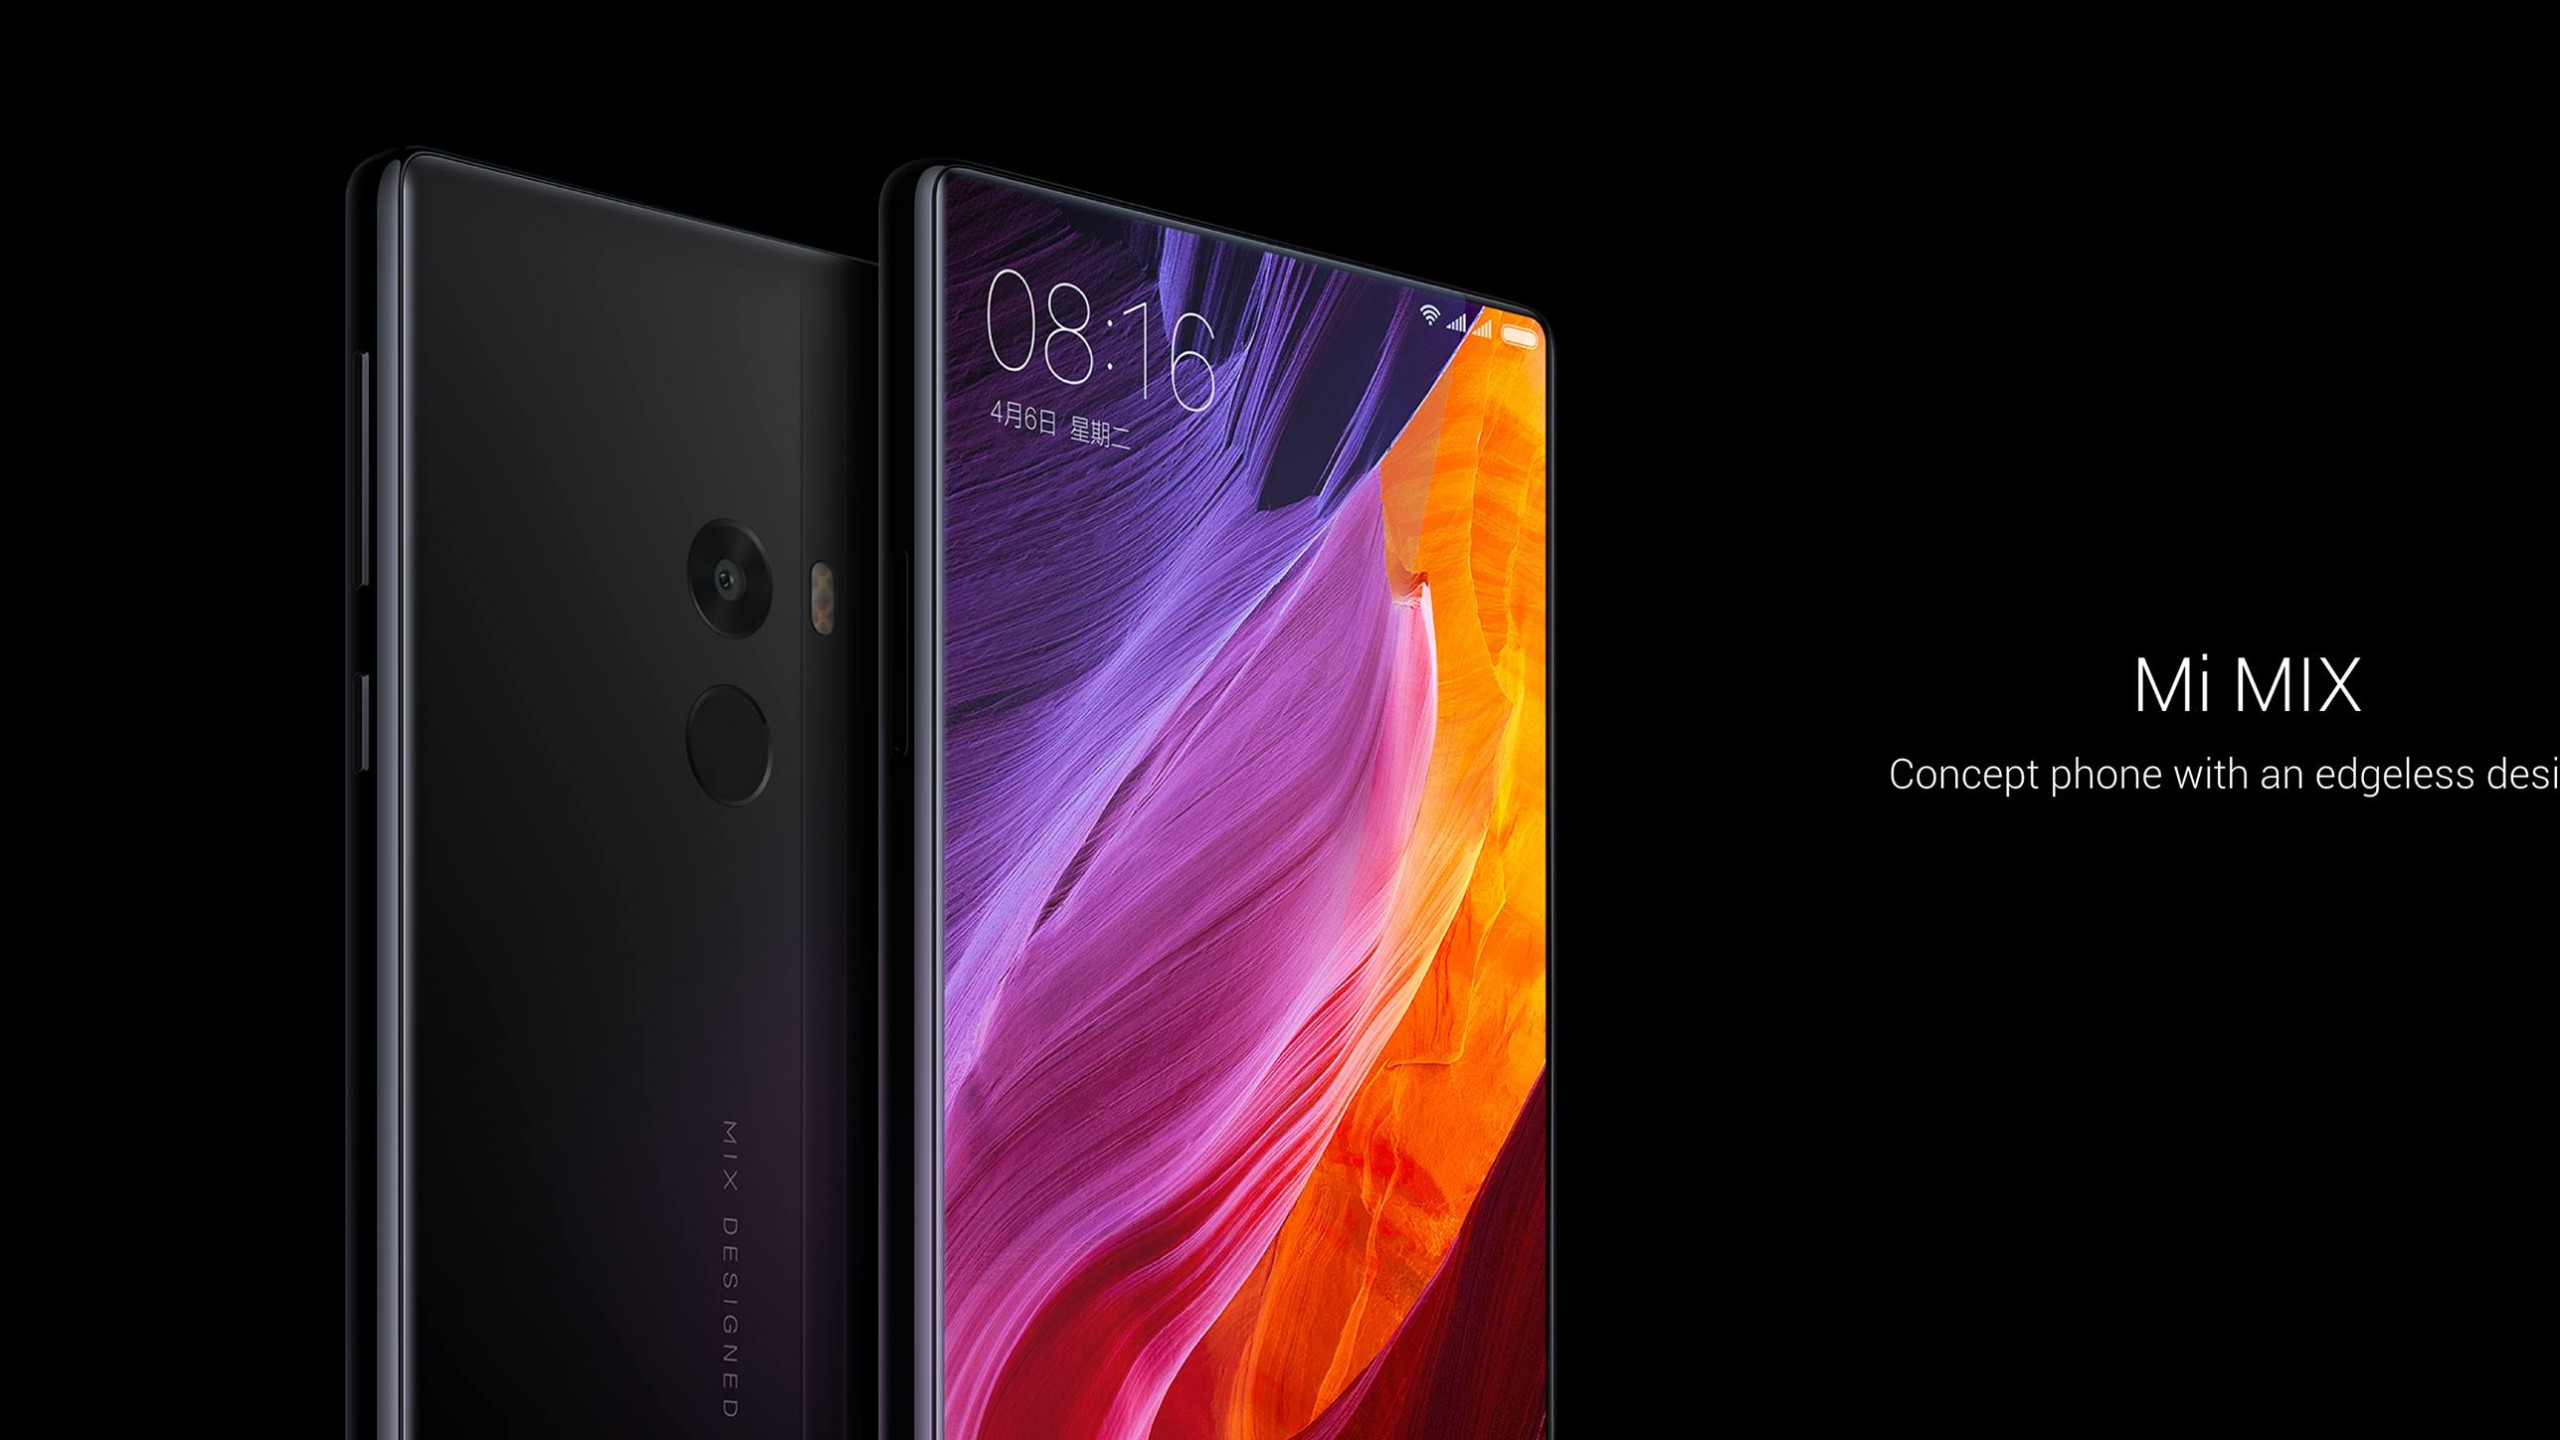 Xiaomi Wallpapers Hd: Wallpaper Xiaomi Mi Mix, Black, HD, Hi-Tech #15380